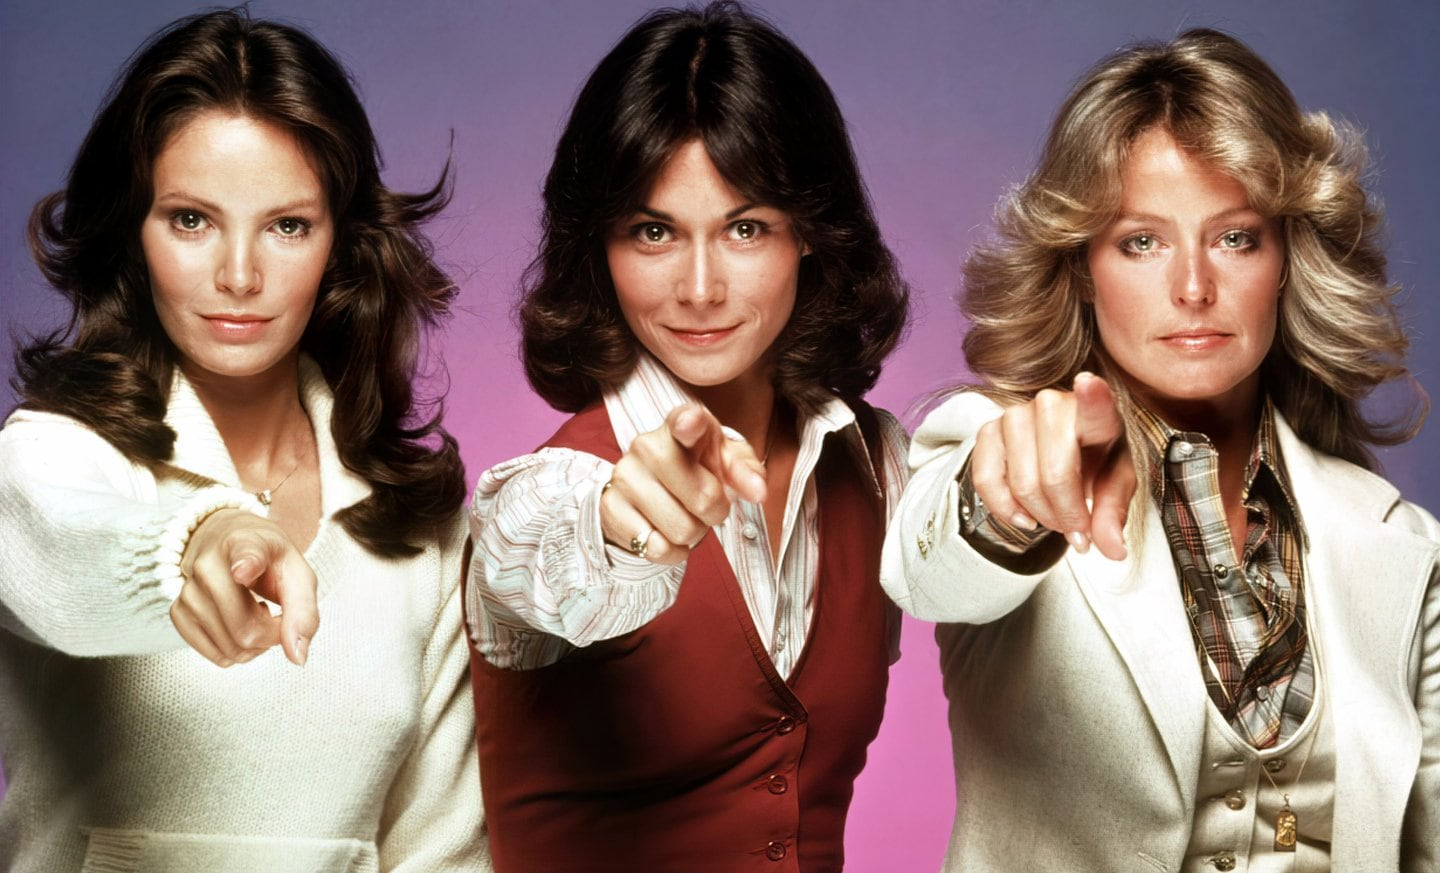 Vintage Charlie's Angels actresses pointing (1970s)